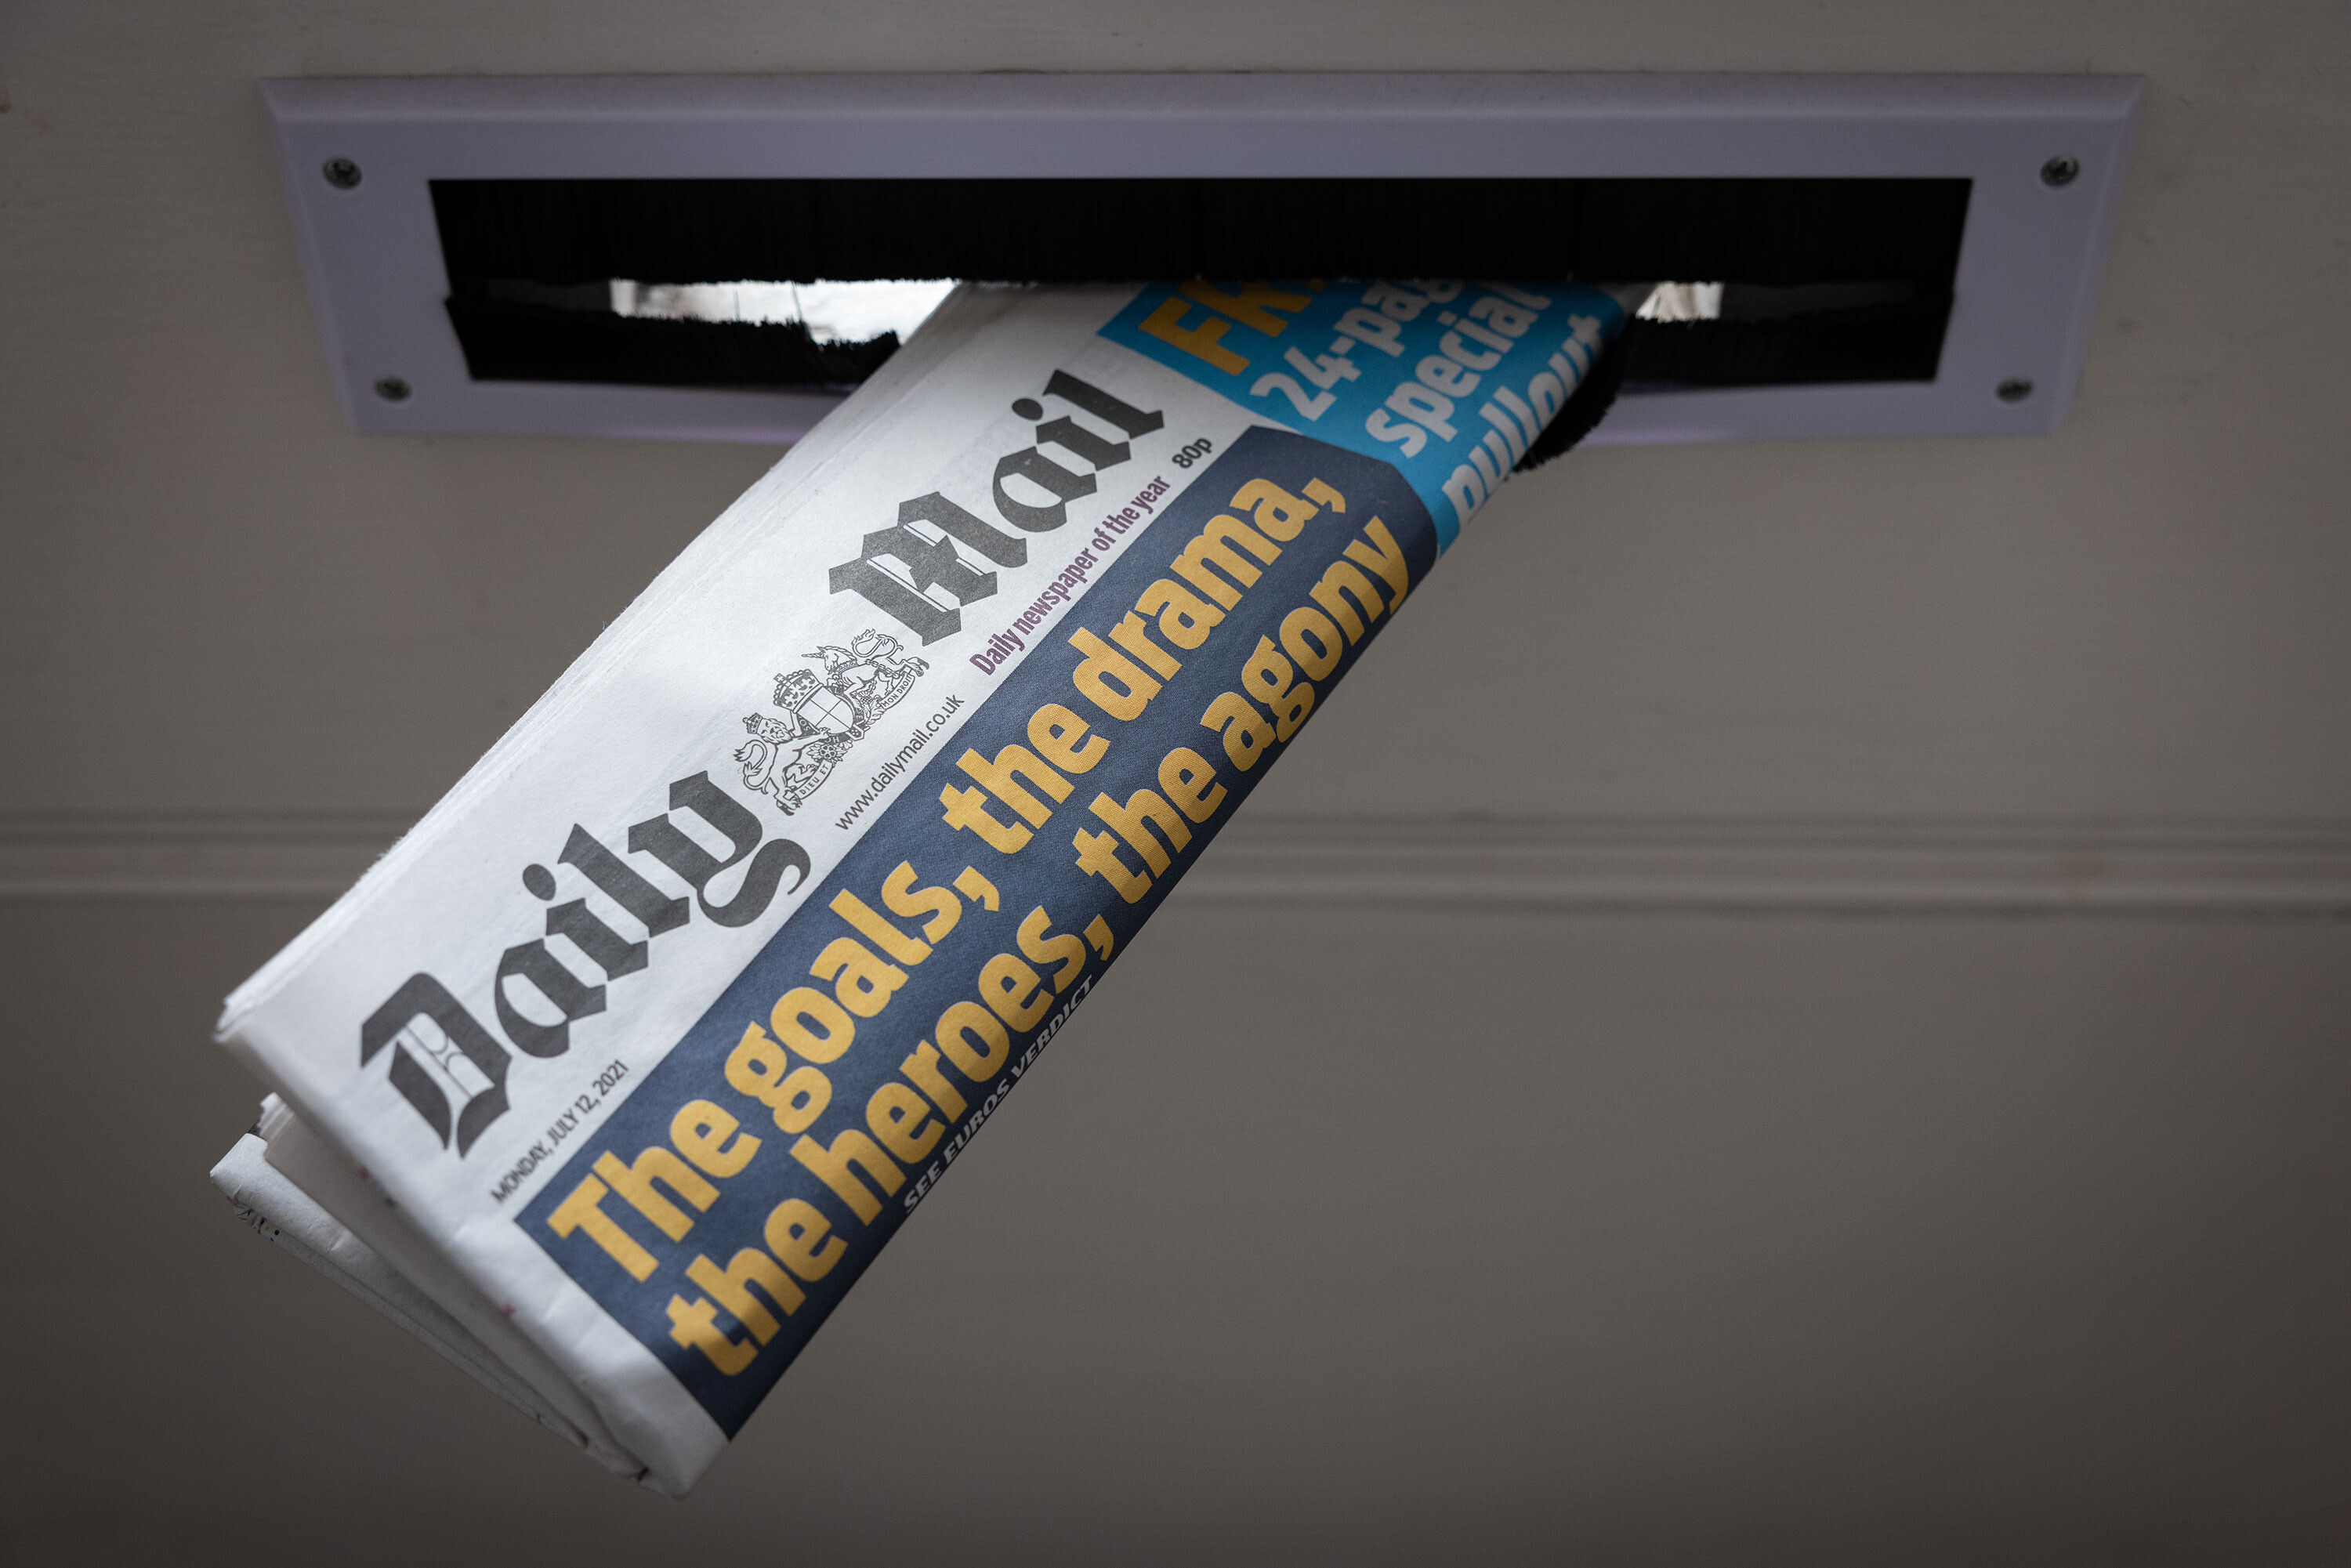 British media baron could take the Daily Mail private